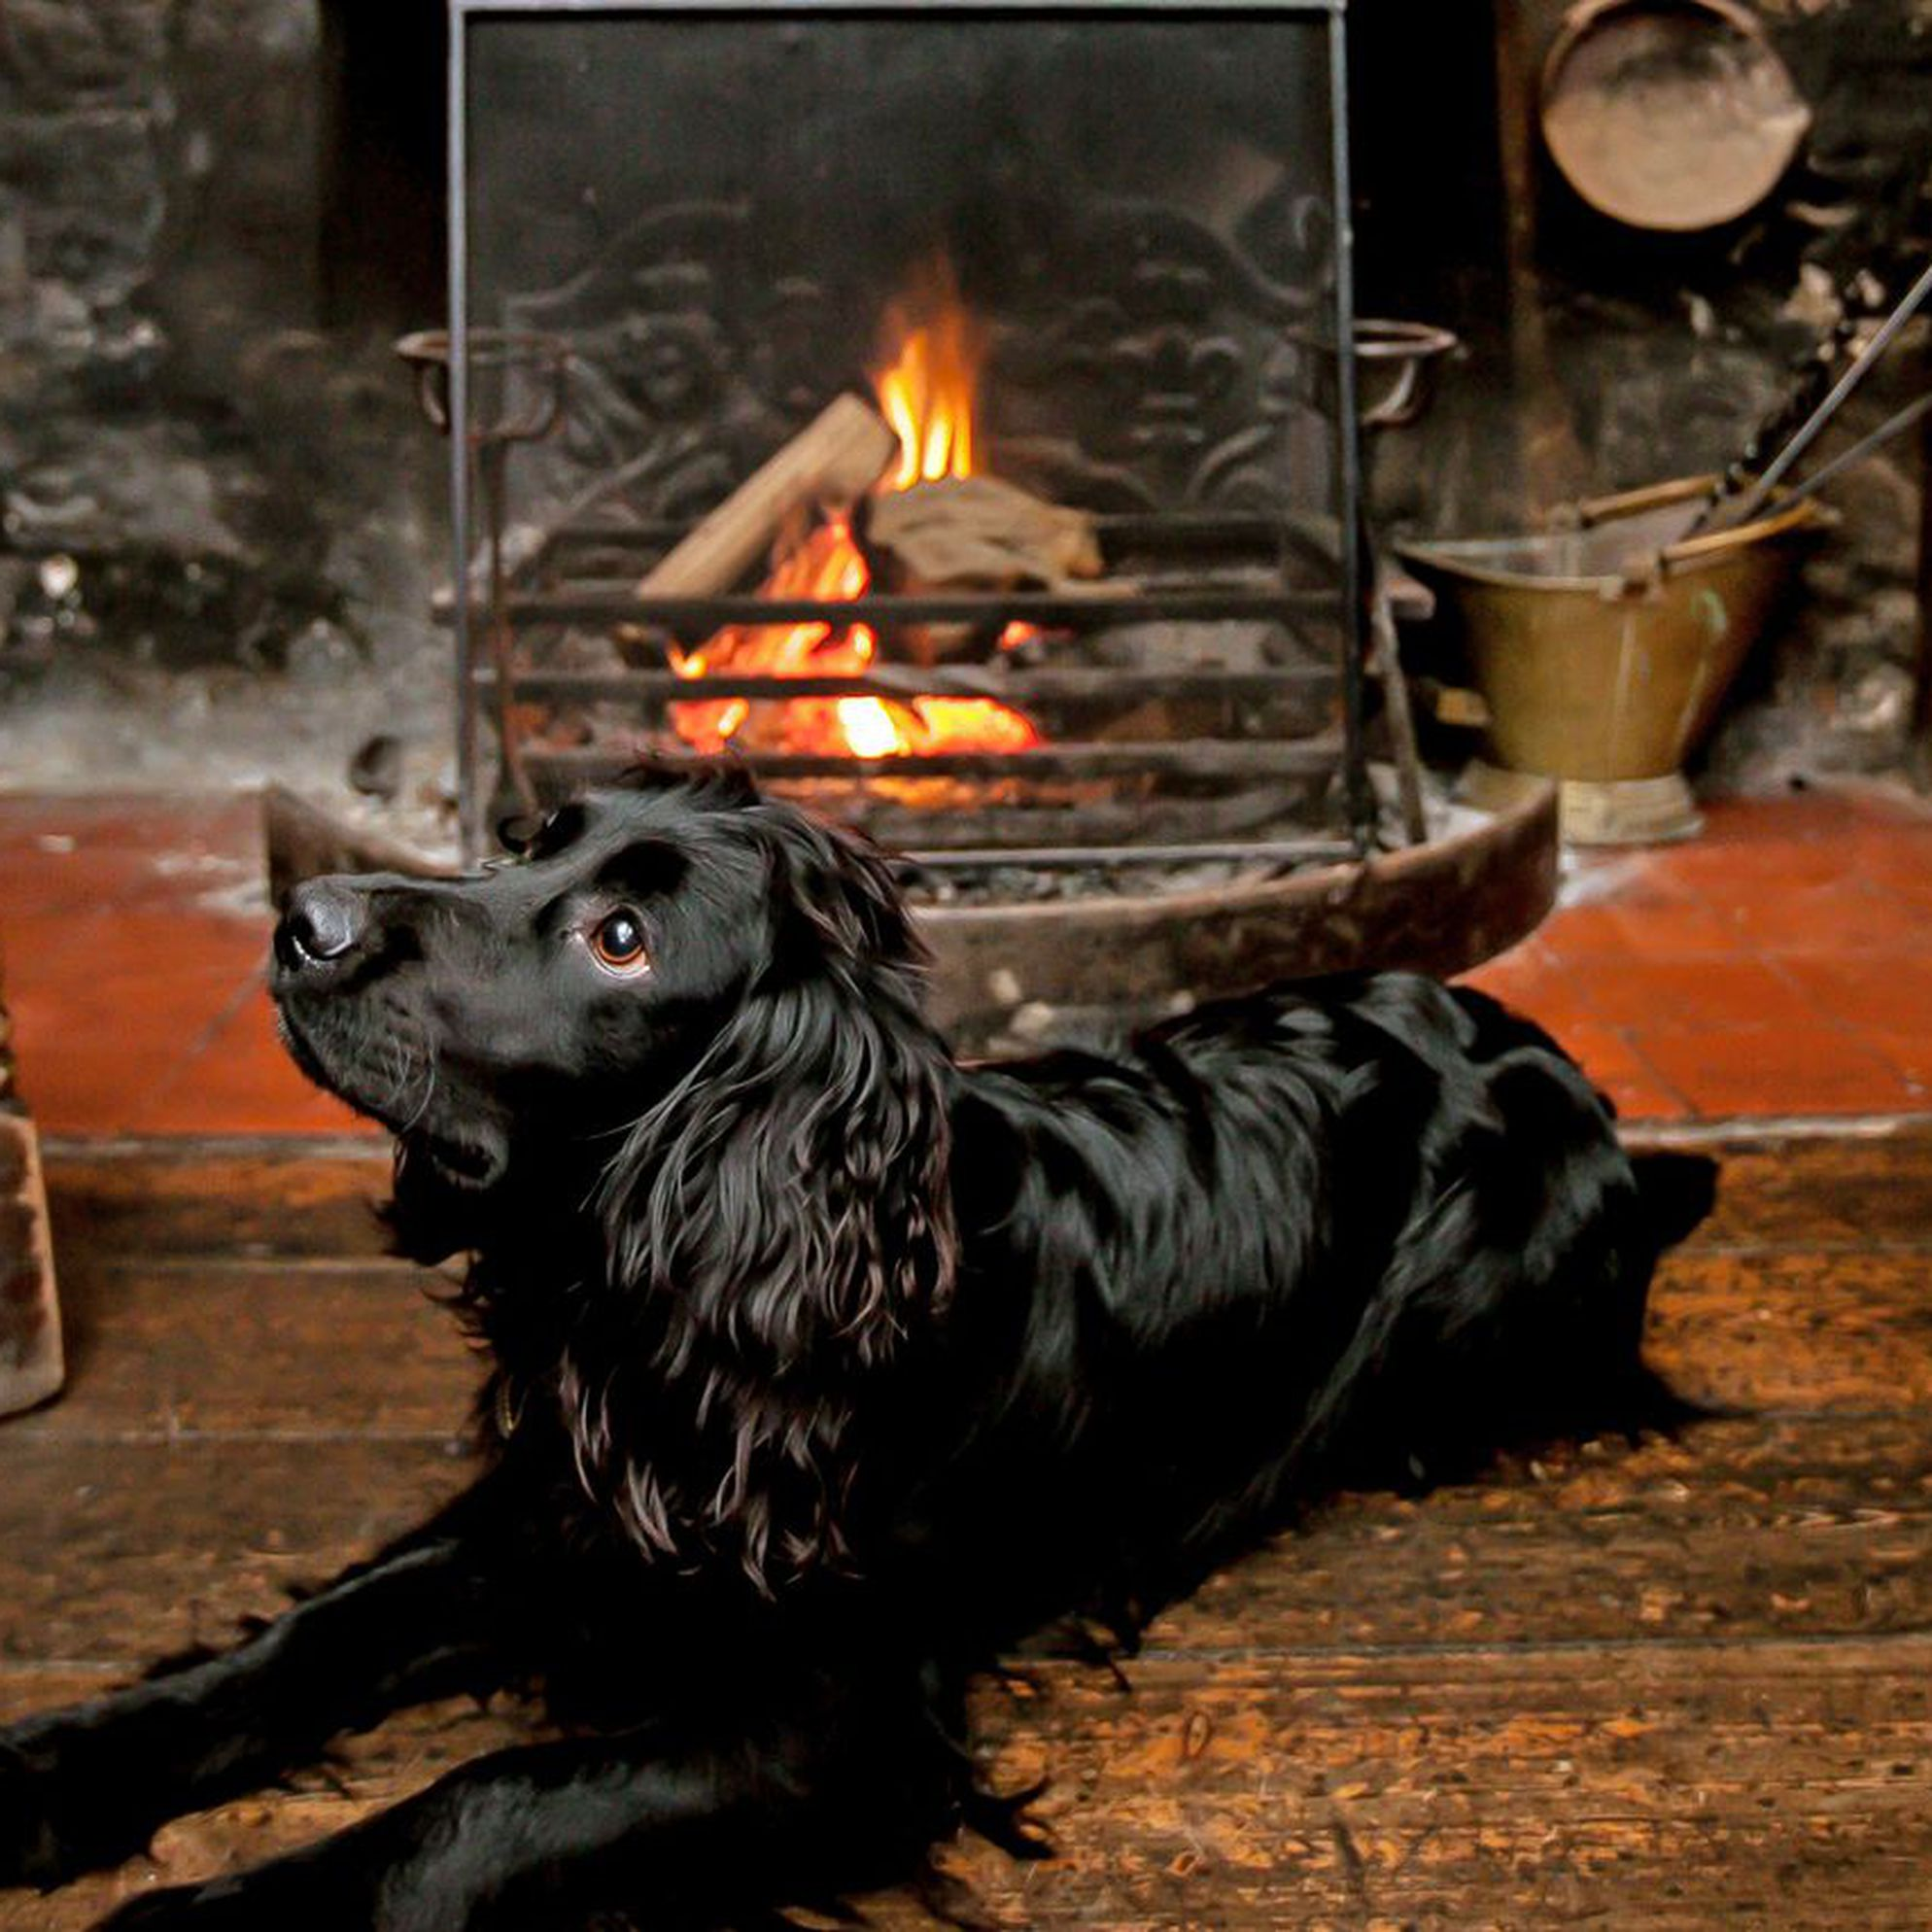 Dog-friendly pubs